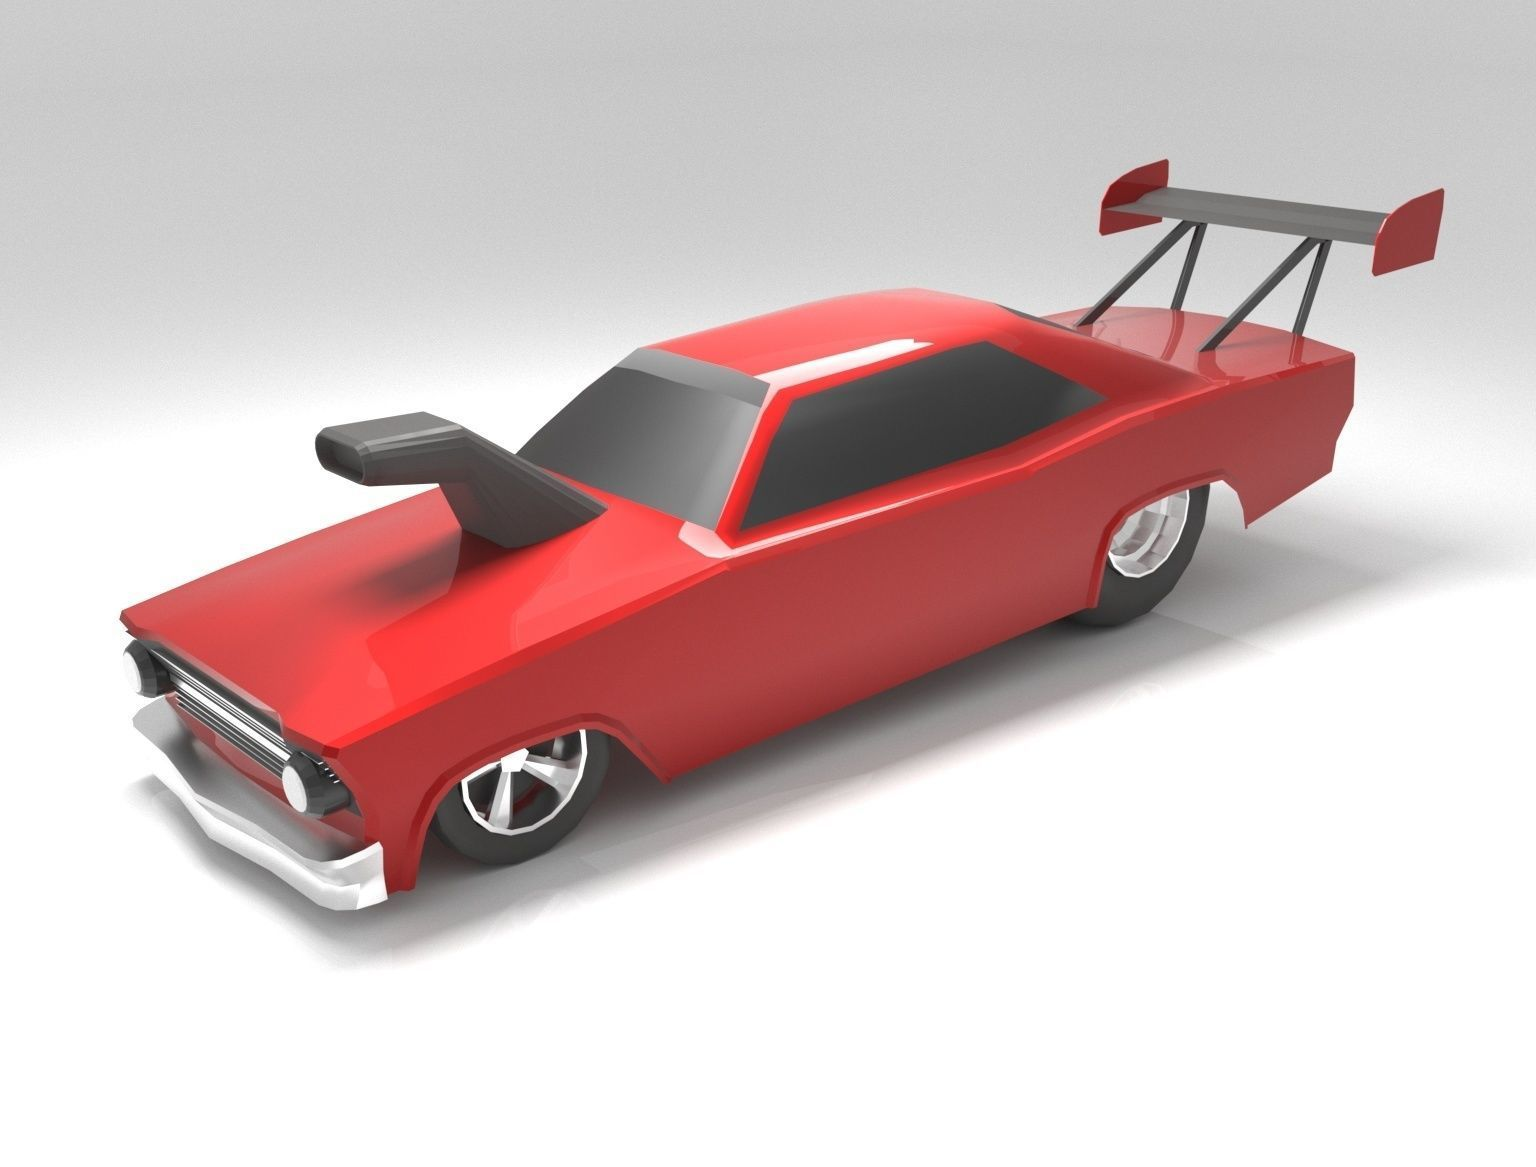 Drag Car low-polygon 3D model | 3D model